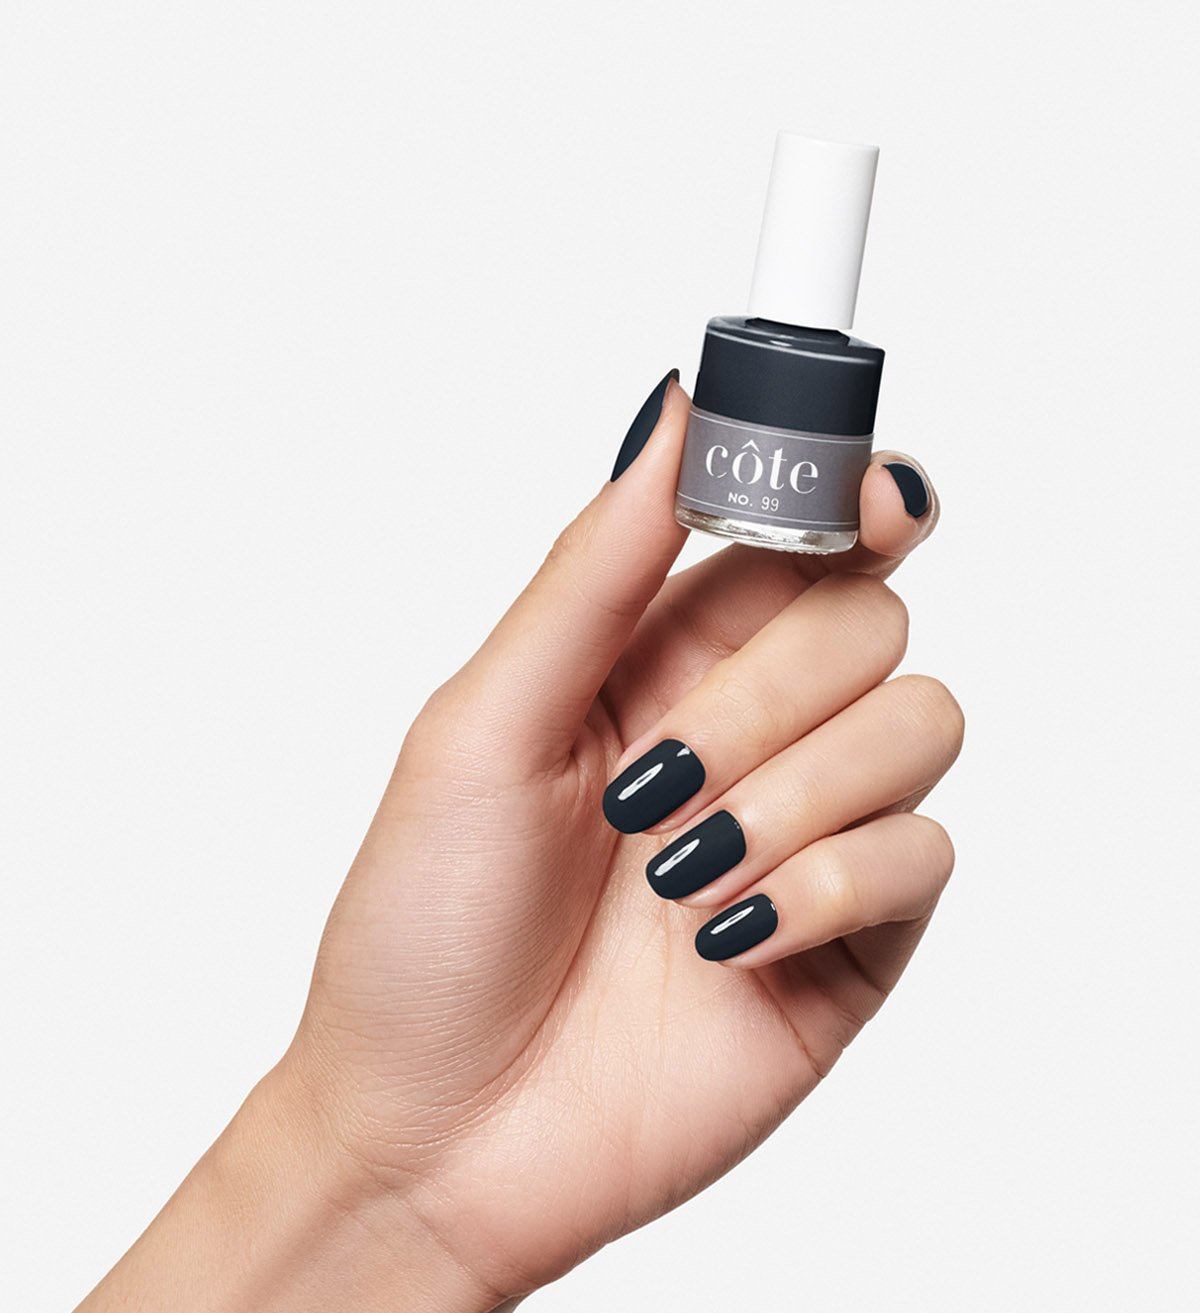 Shop No. 99 Nail Polish by cote - Let's make it a trend #explorebeautiful nailcare and nail polish